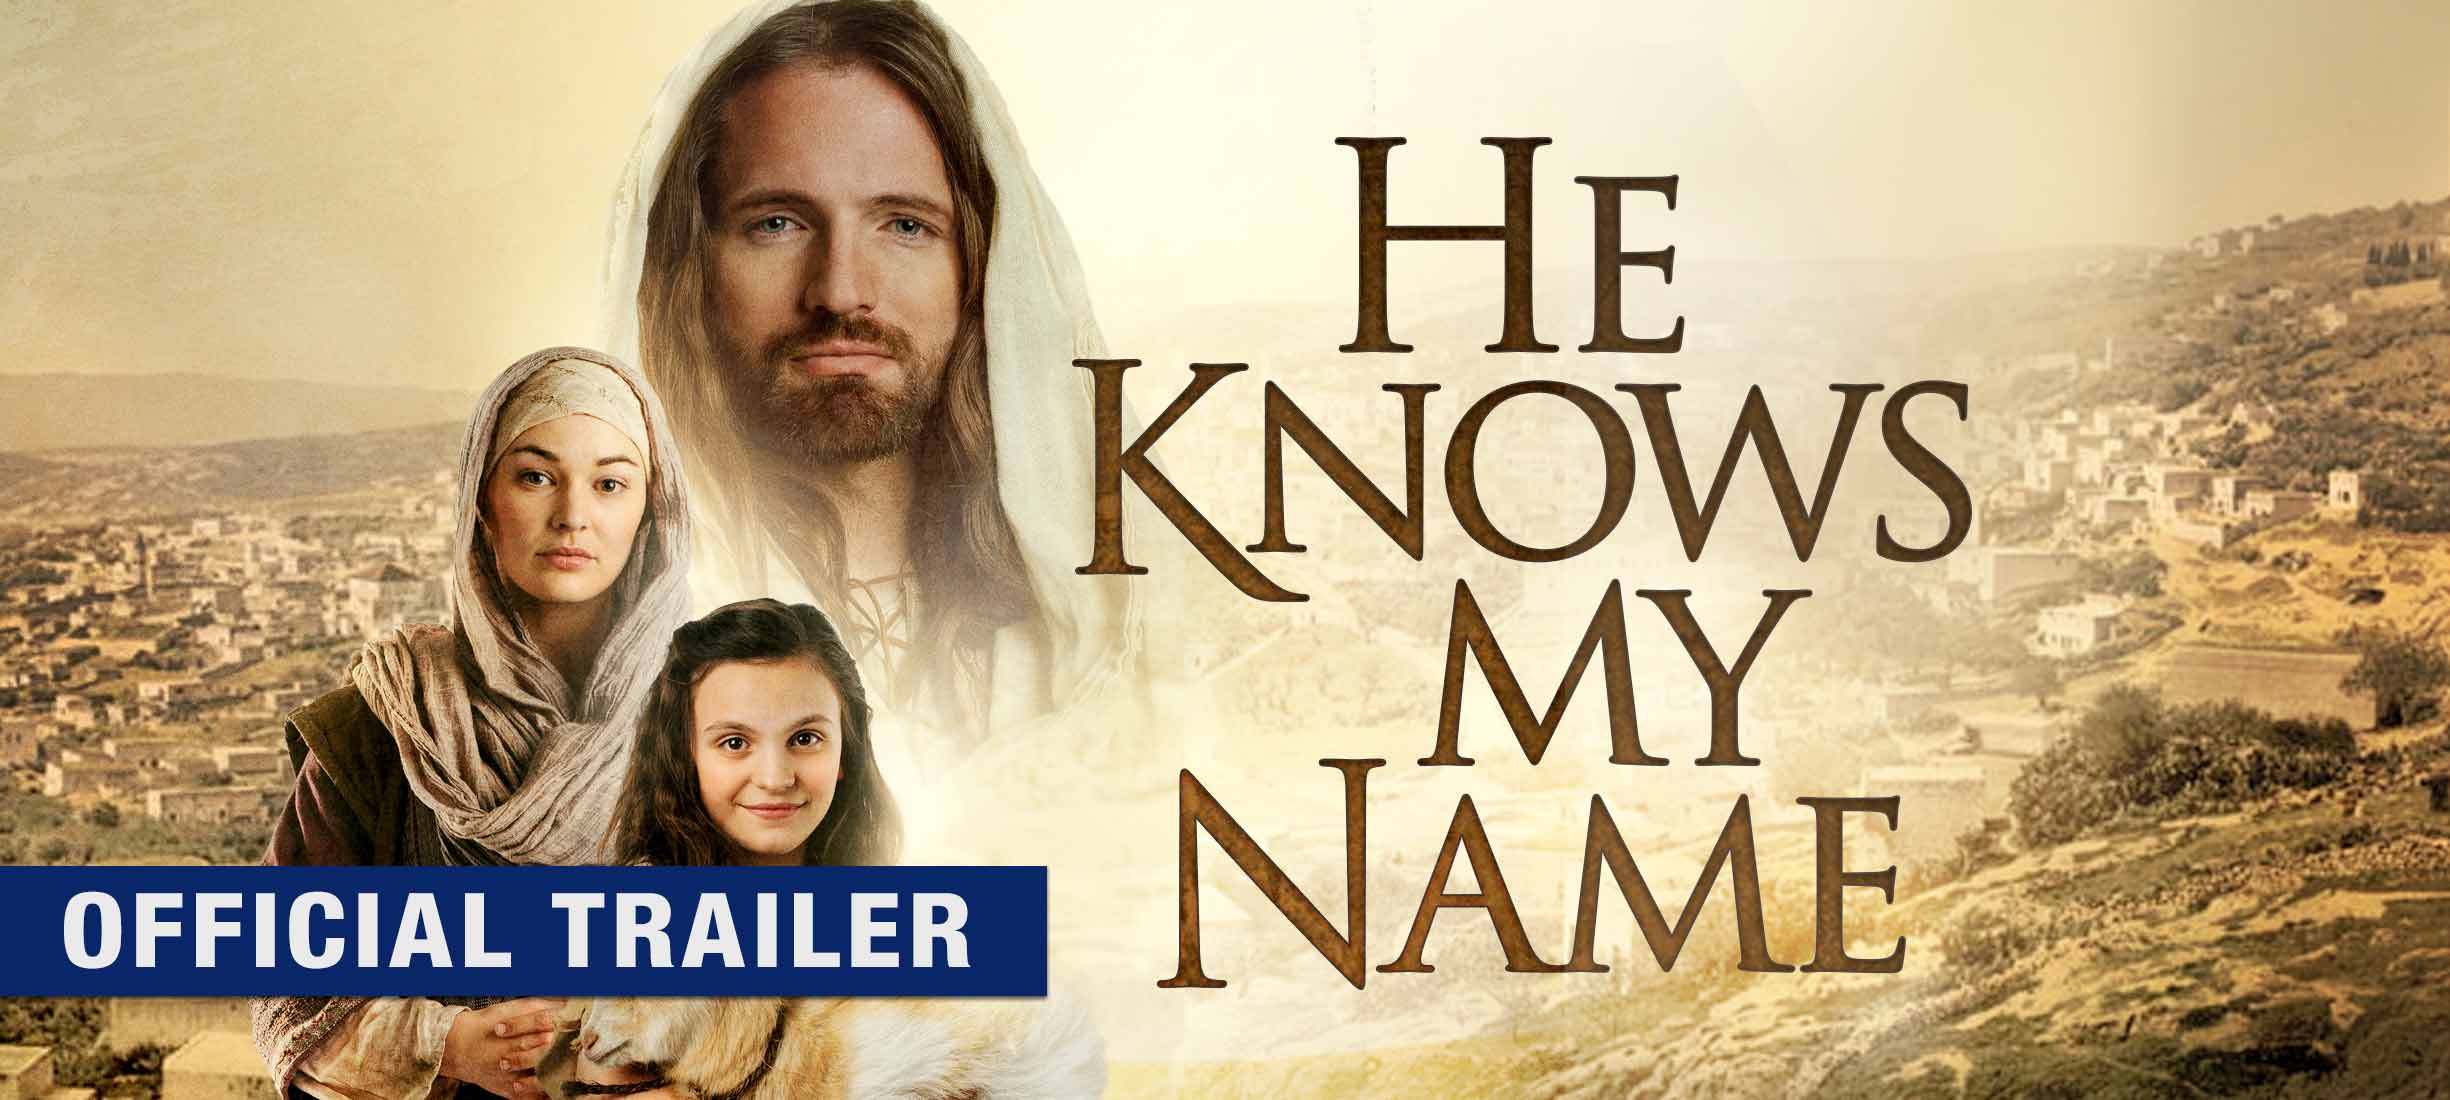 He Knows My Name: Trailer